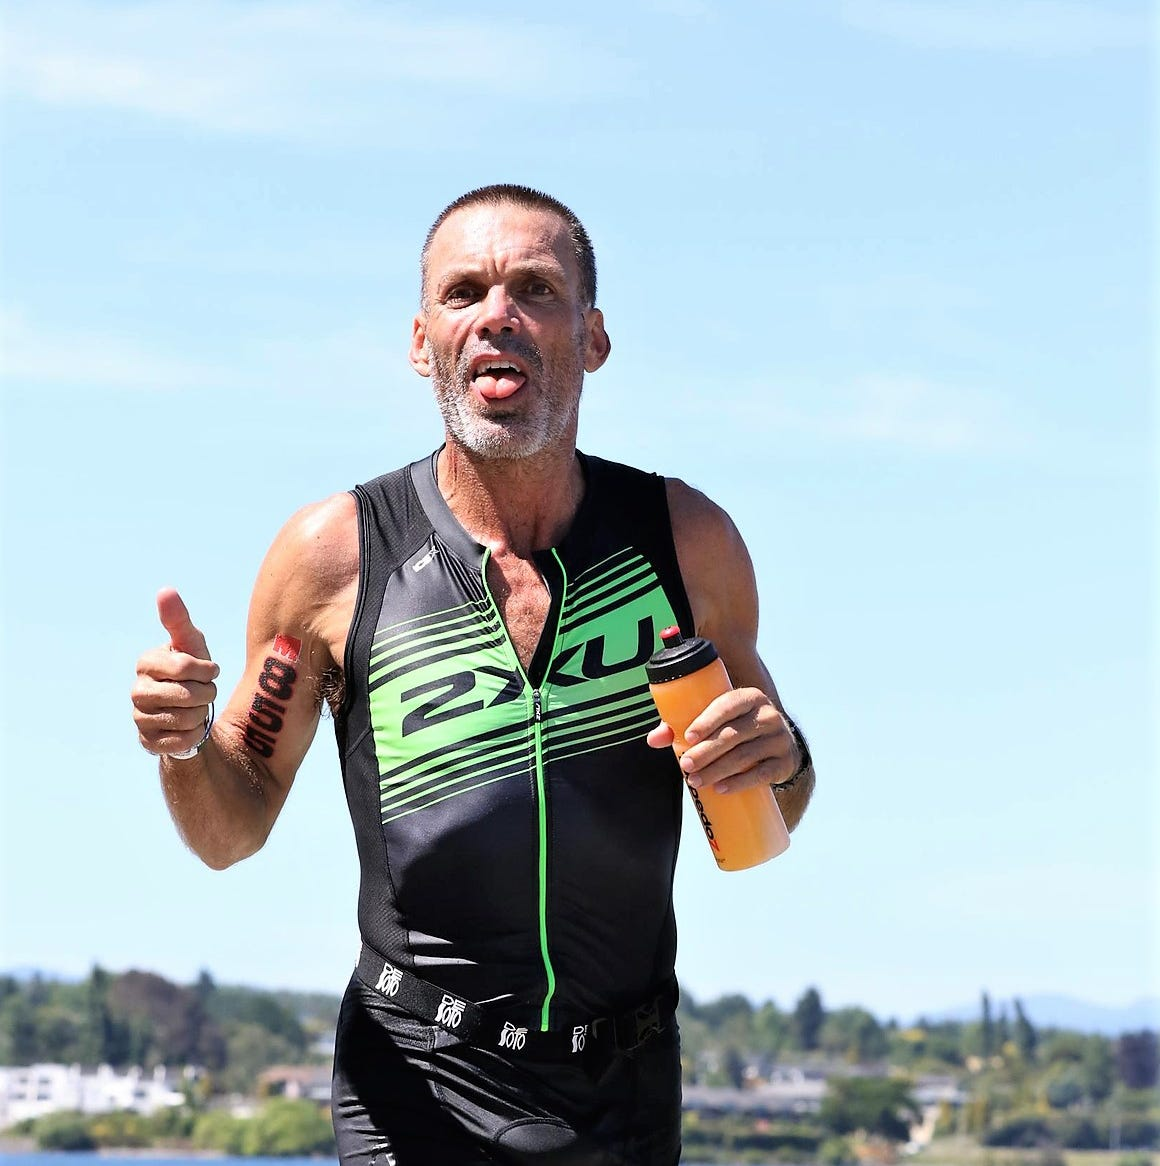 Craig Weymouth's athletic ascent to Pacific Games began on Recovery Road